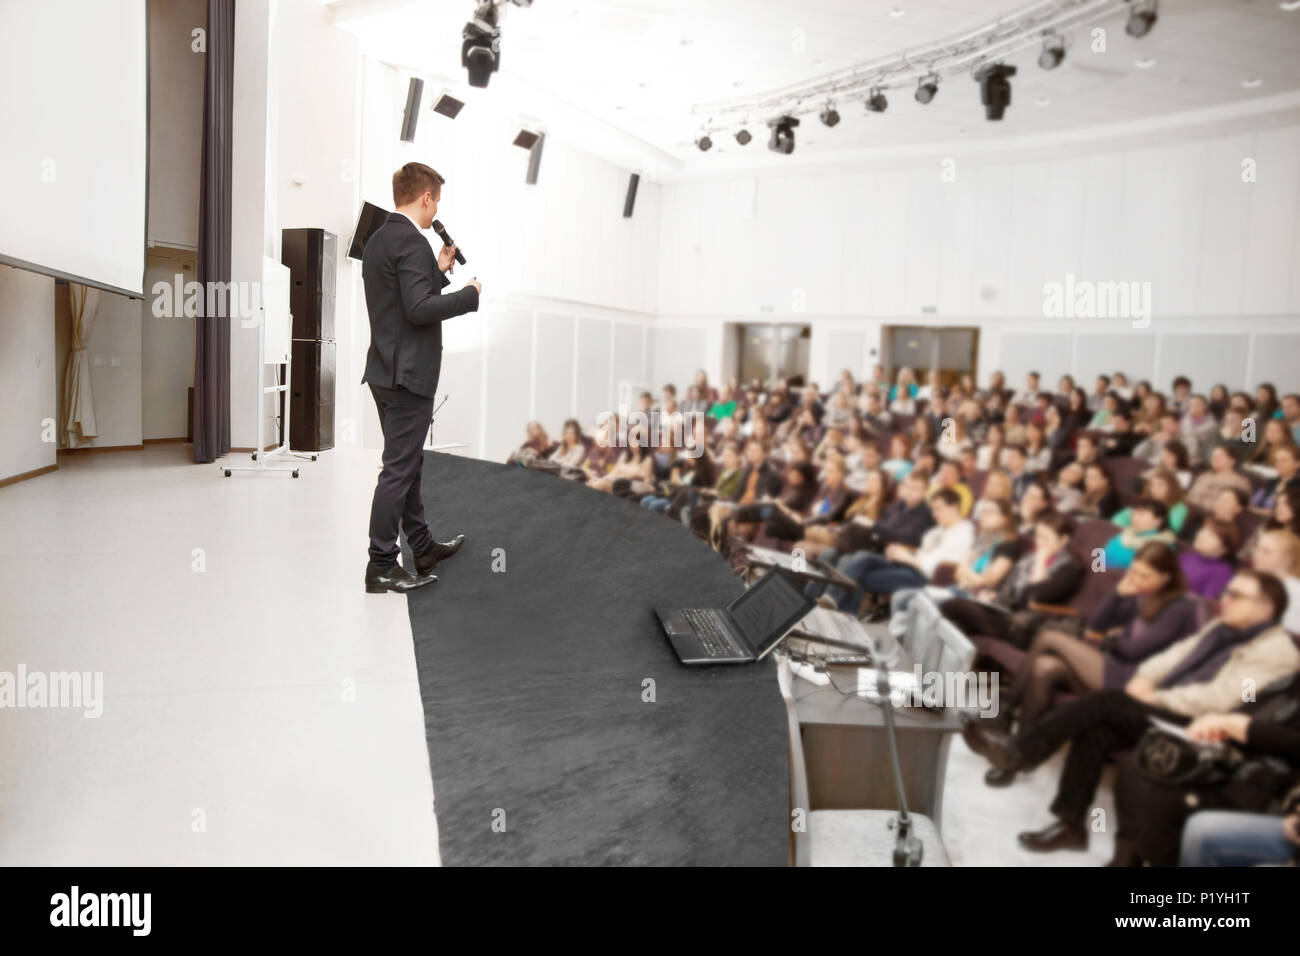 Speaker at a business conference and presentation. - Stock Image